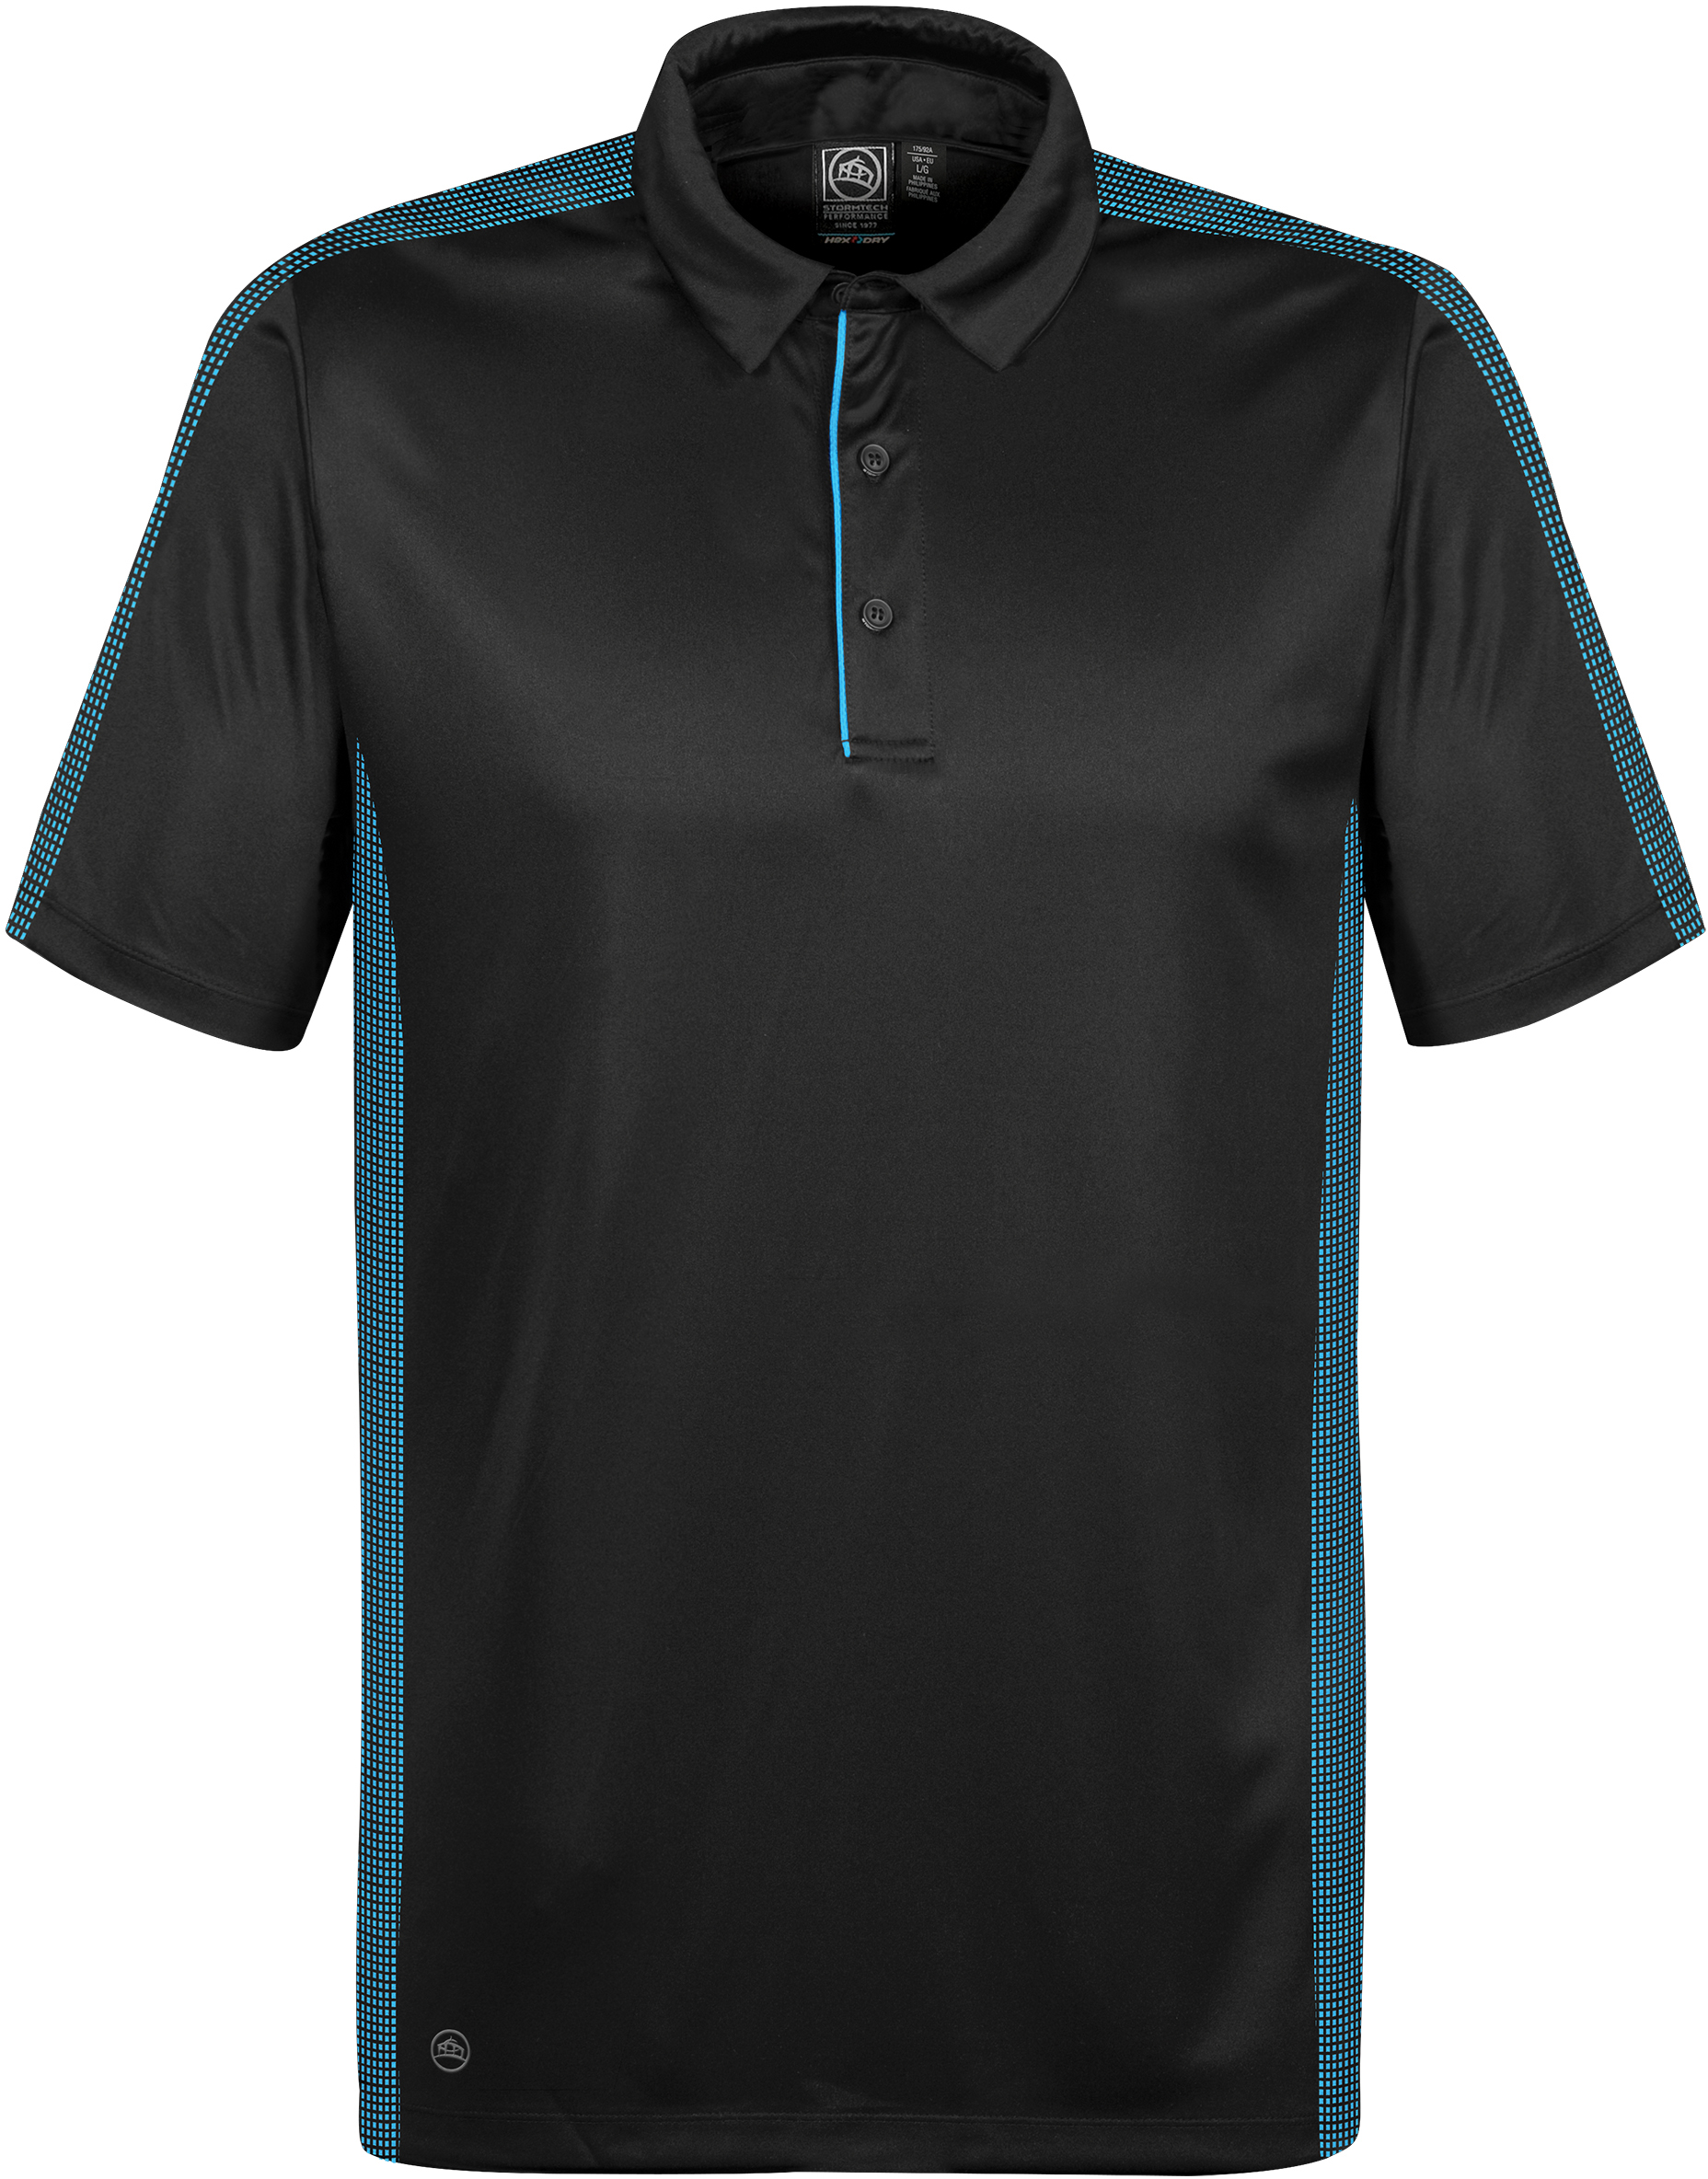 Stormtech XPX-1 - Men's Bolt Polo